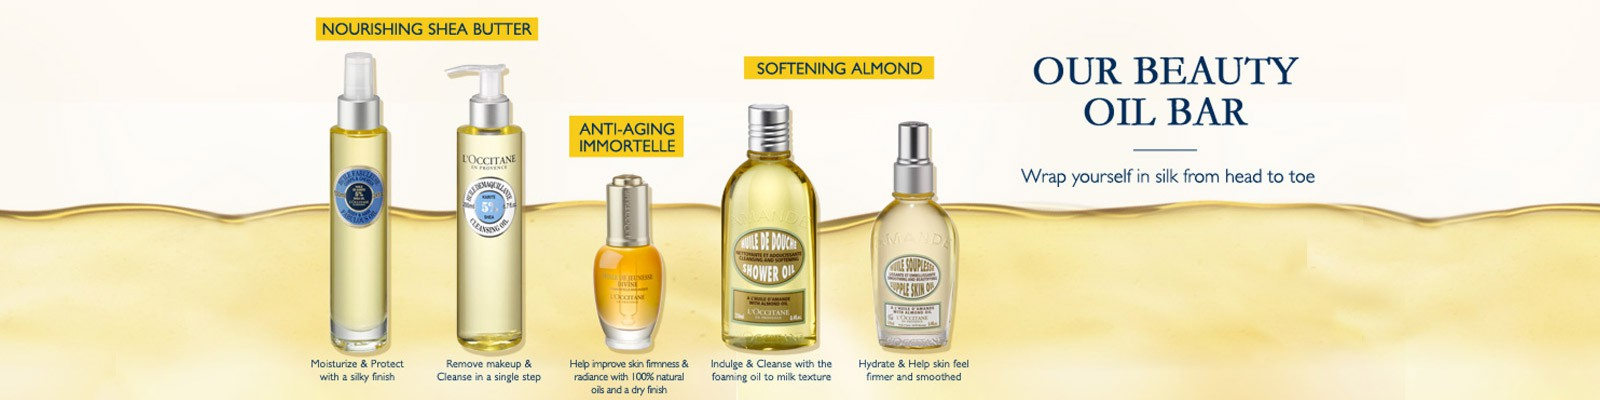 Shop Now The Best Oil Products For Silky Skin!